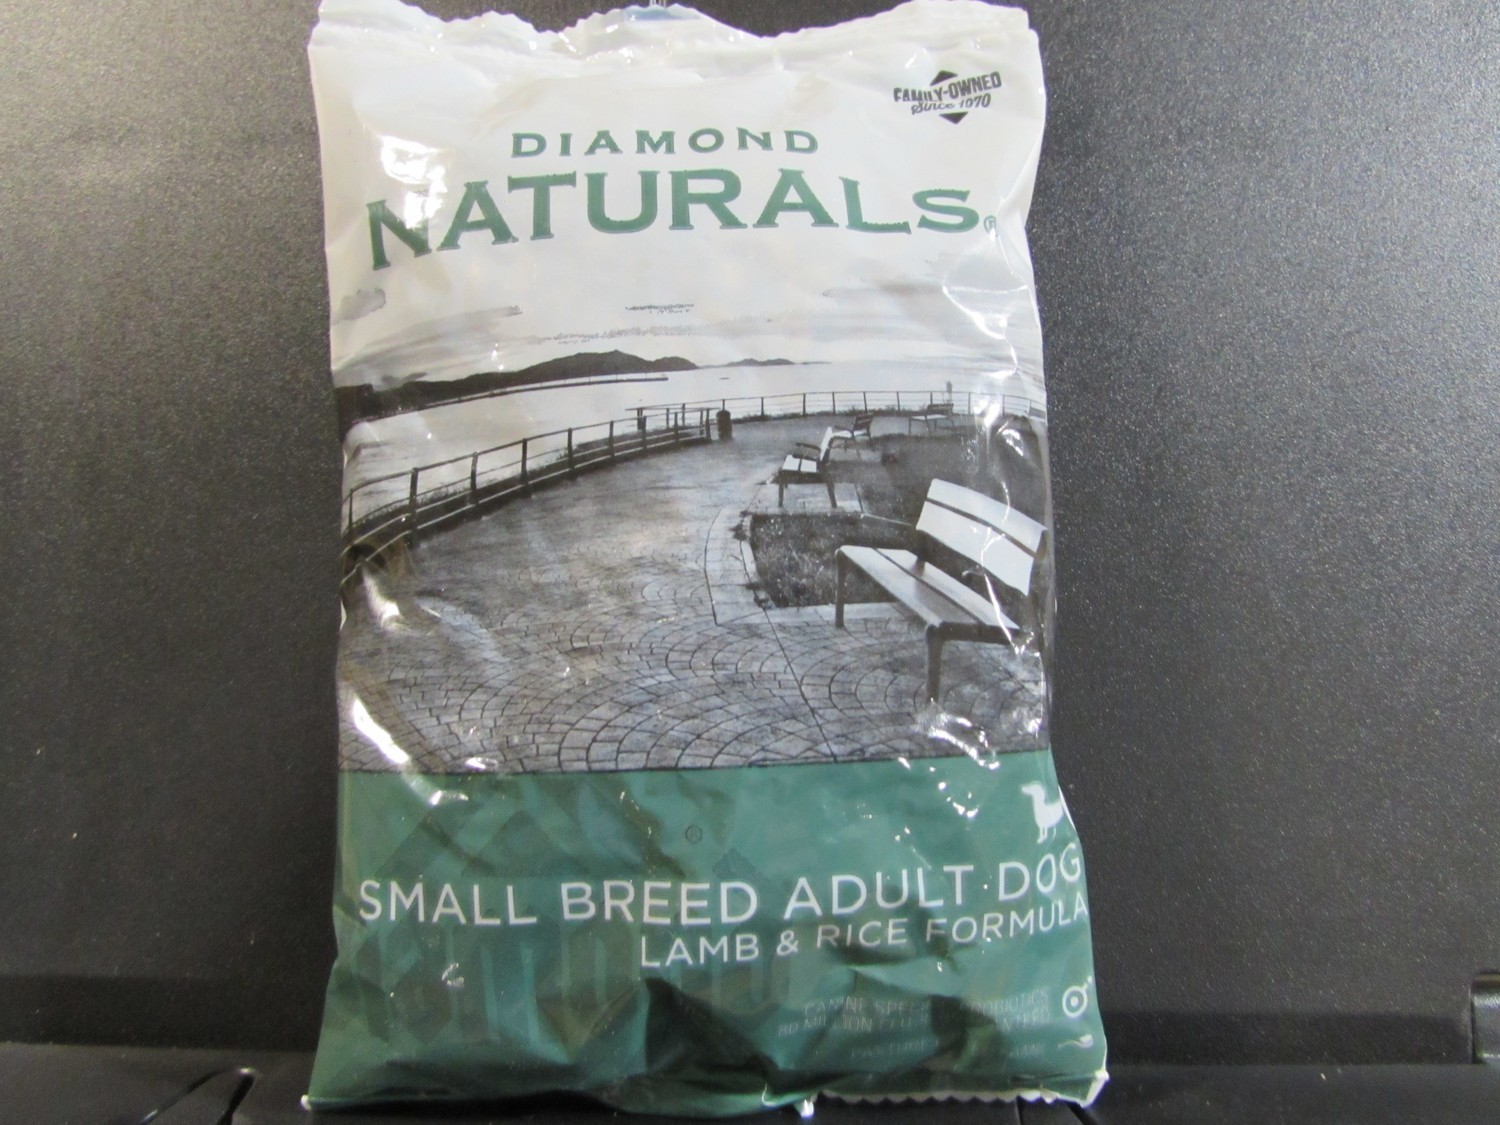 DIAMOND NATURALS SMALL BREED ADULT DOG LAMB & RICE 6 OZ (11/18) (A.P1)